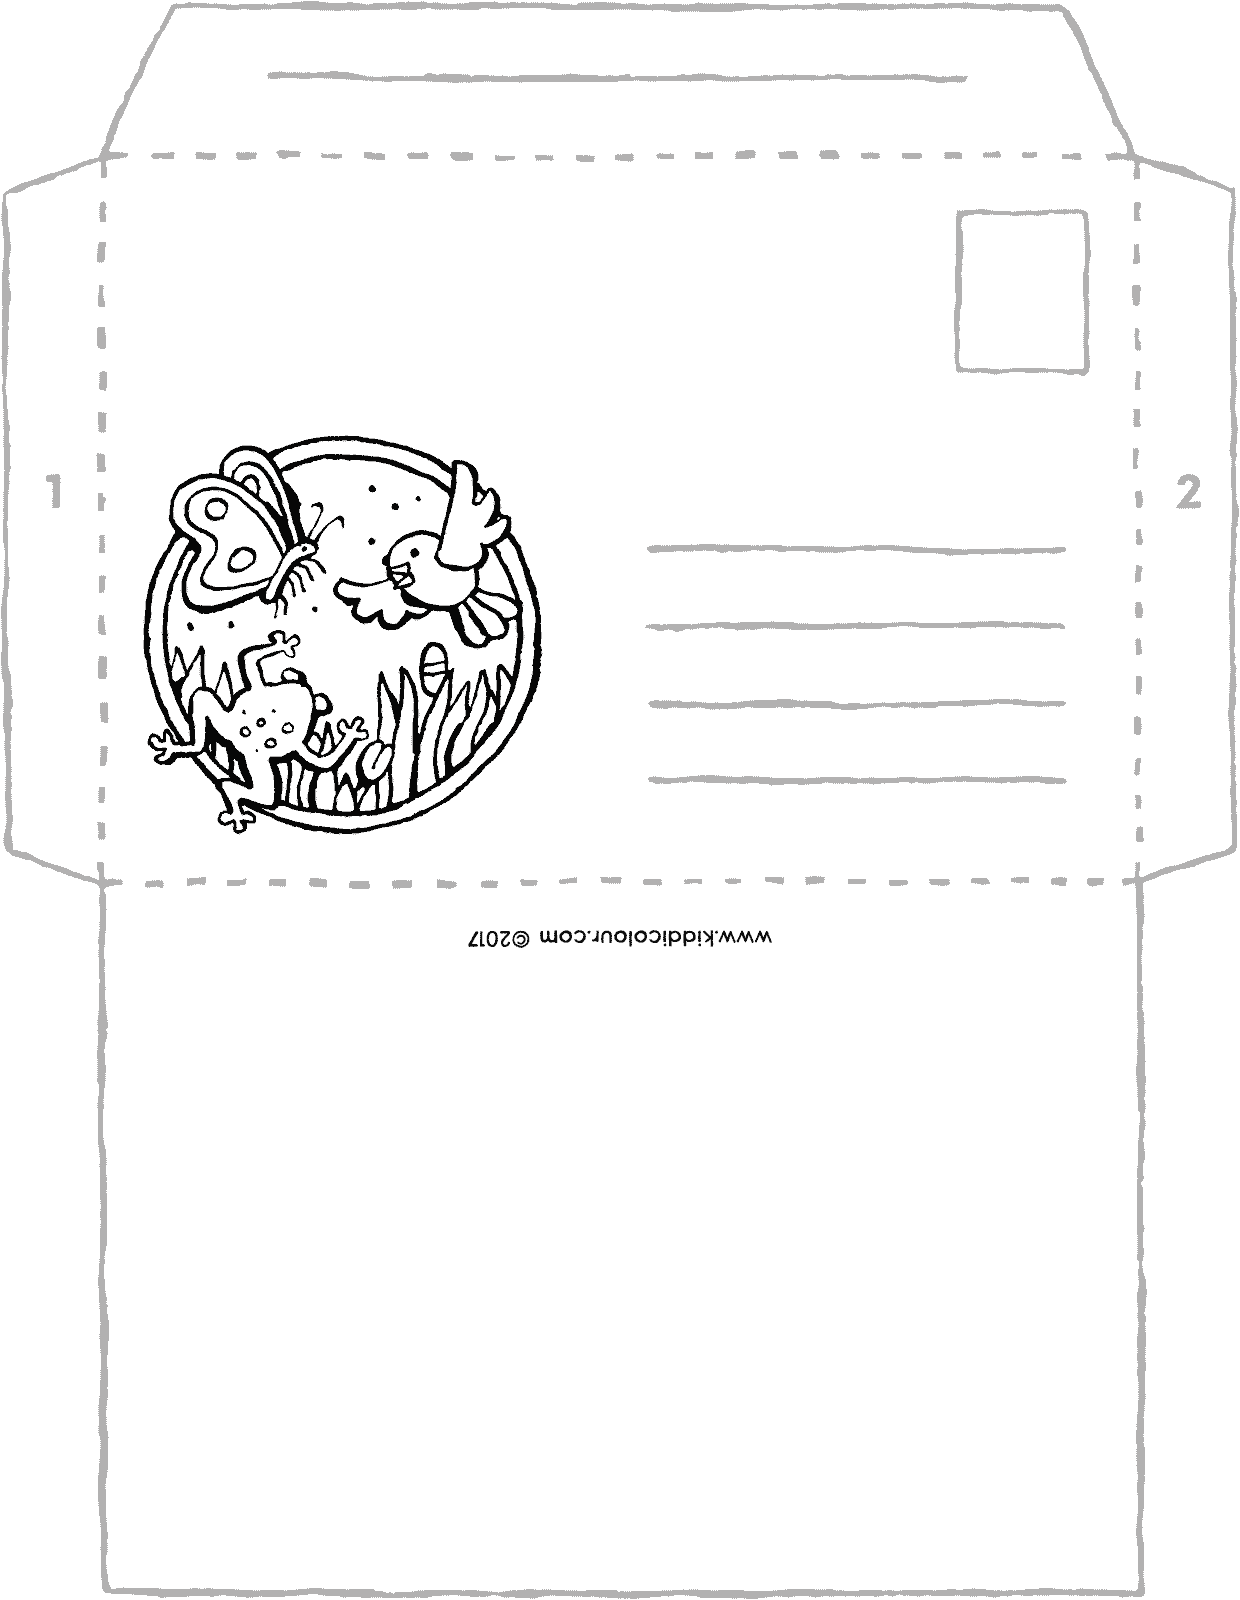 envelope craft colouring page drawing picture 01V